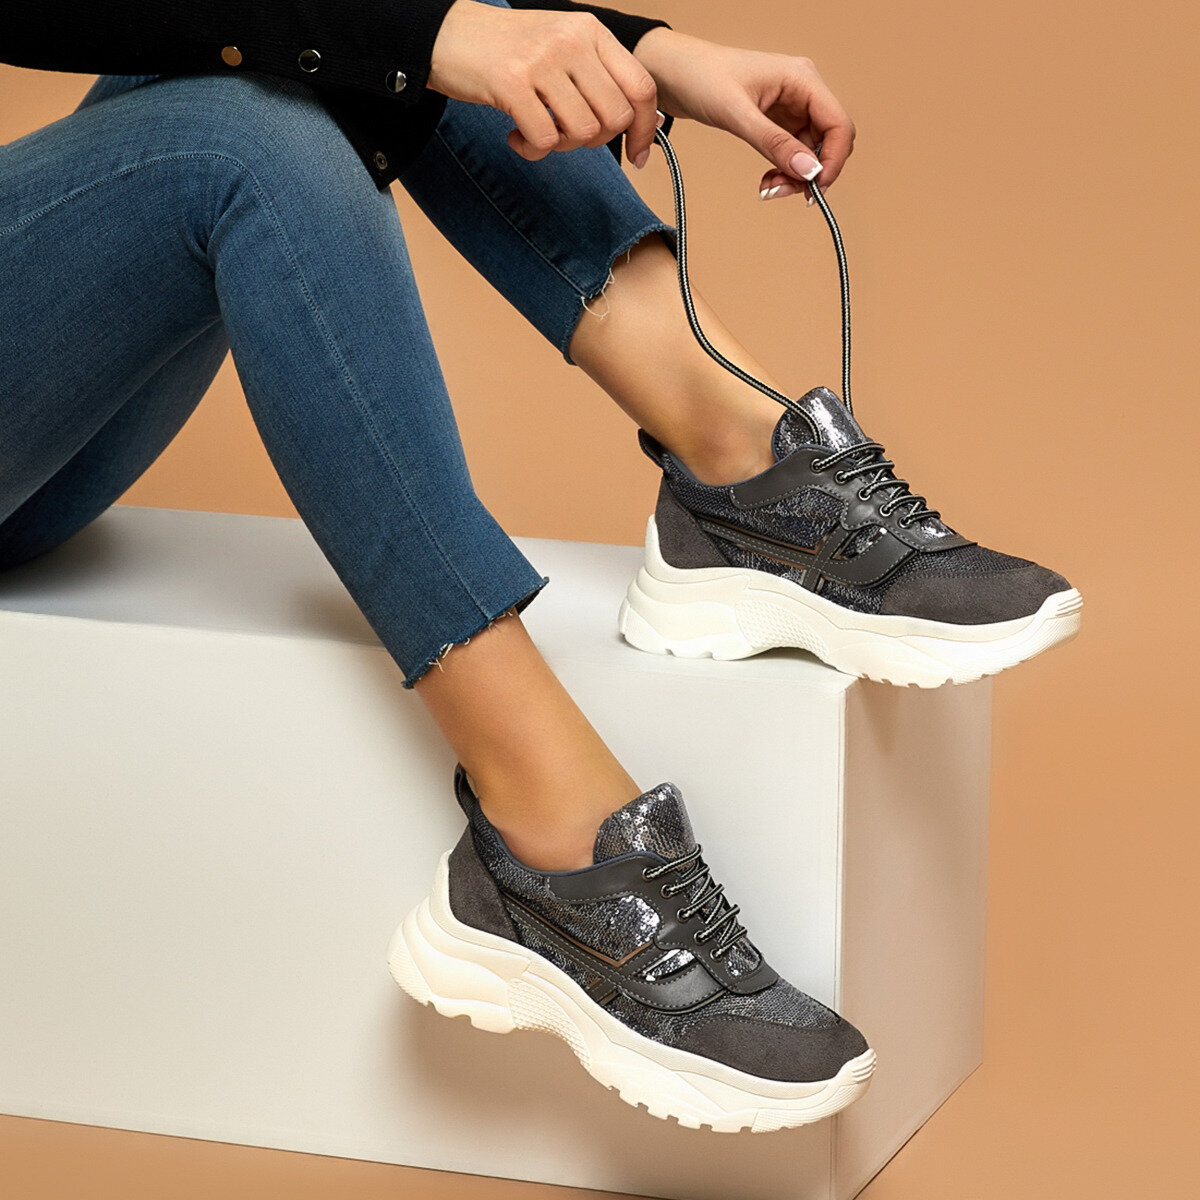 FLO Women's Sneakers Casual Spring Summer Women Fashion Sneakers Vulcanized Shoes BUTIGO NUVO Gray